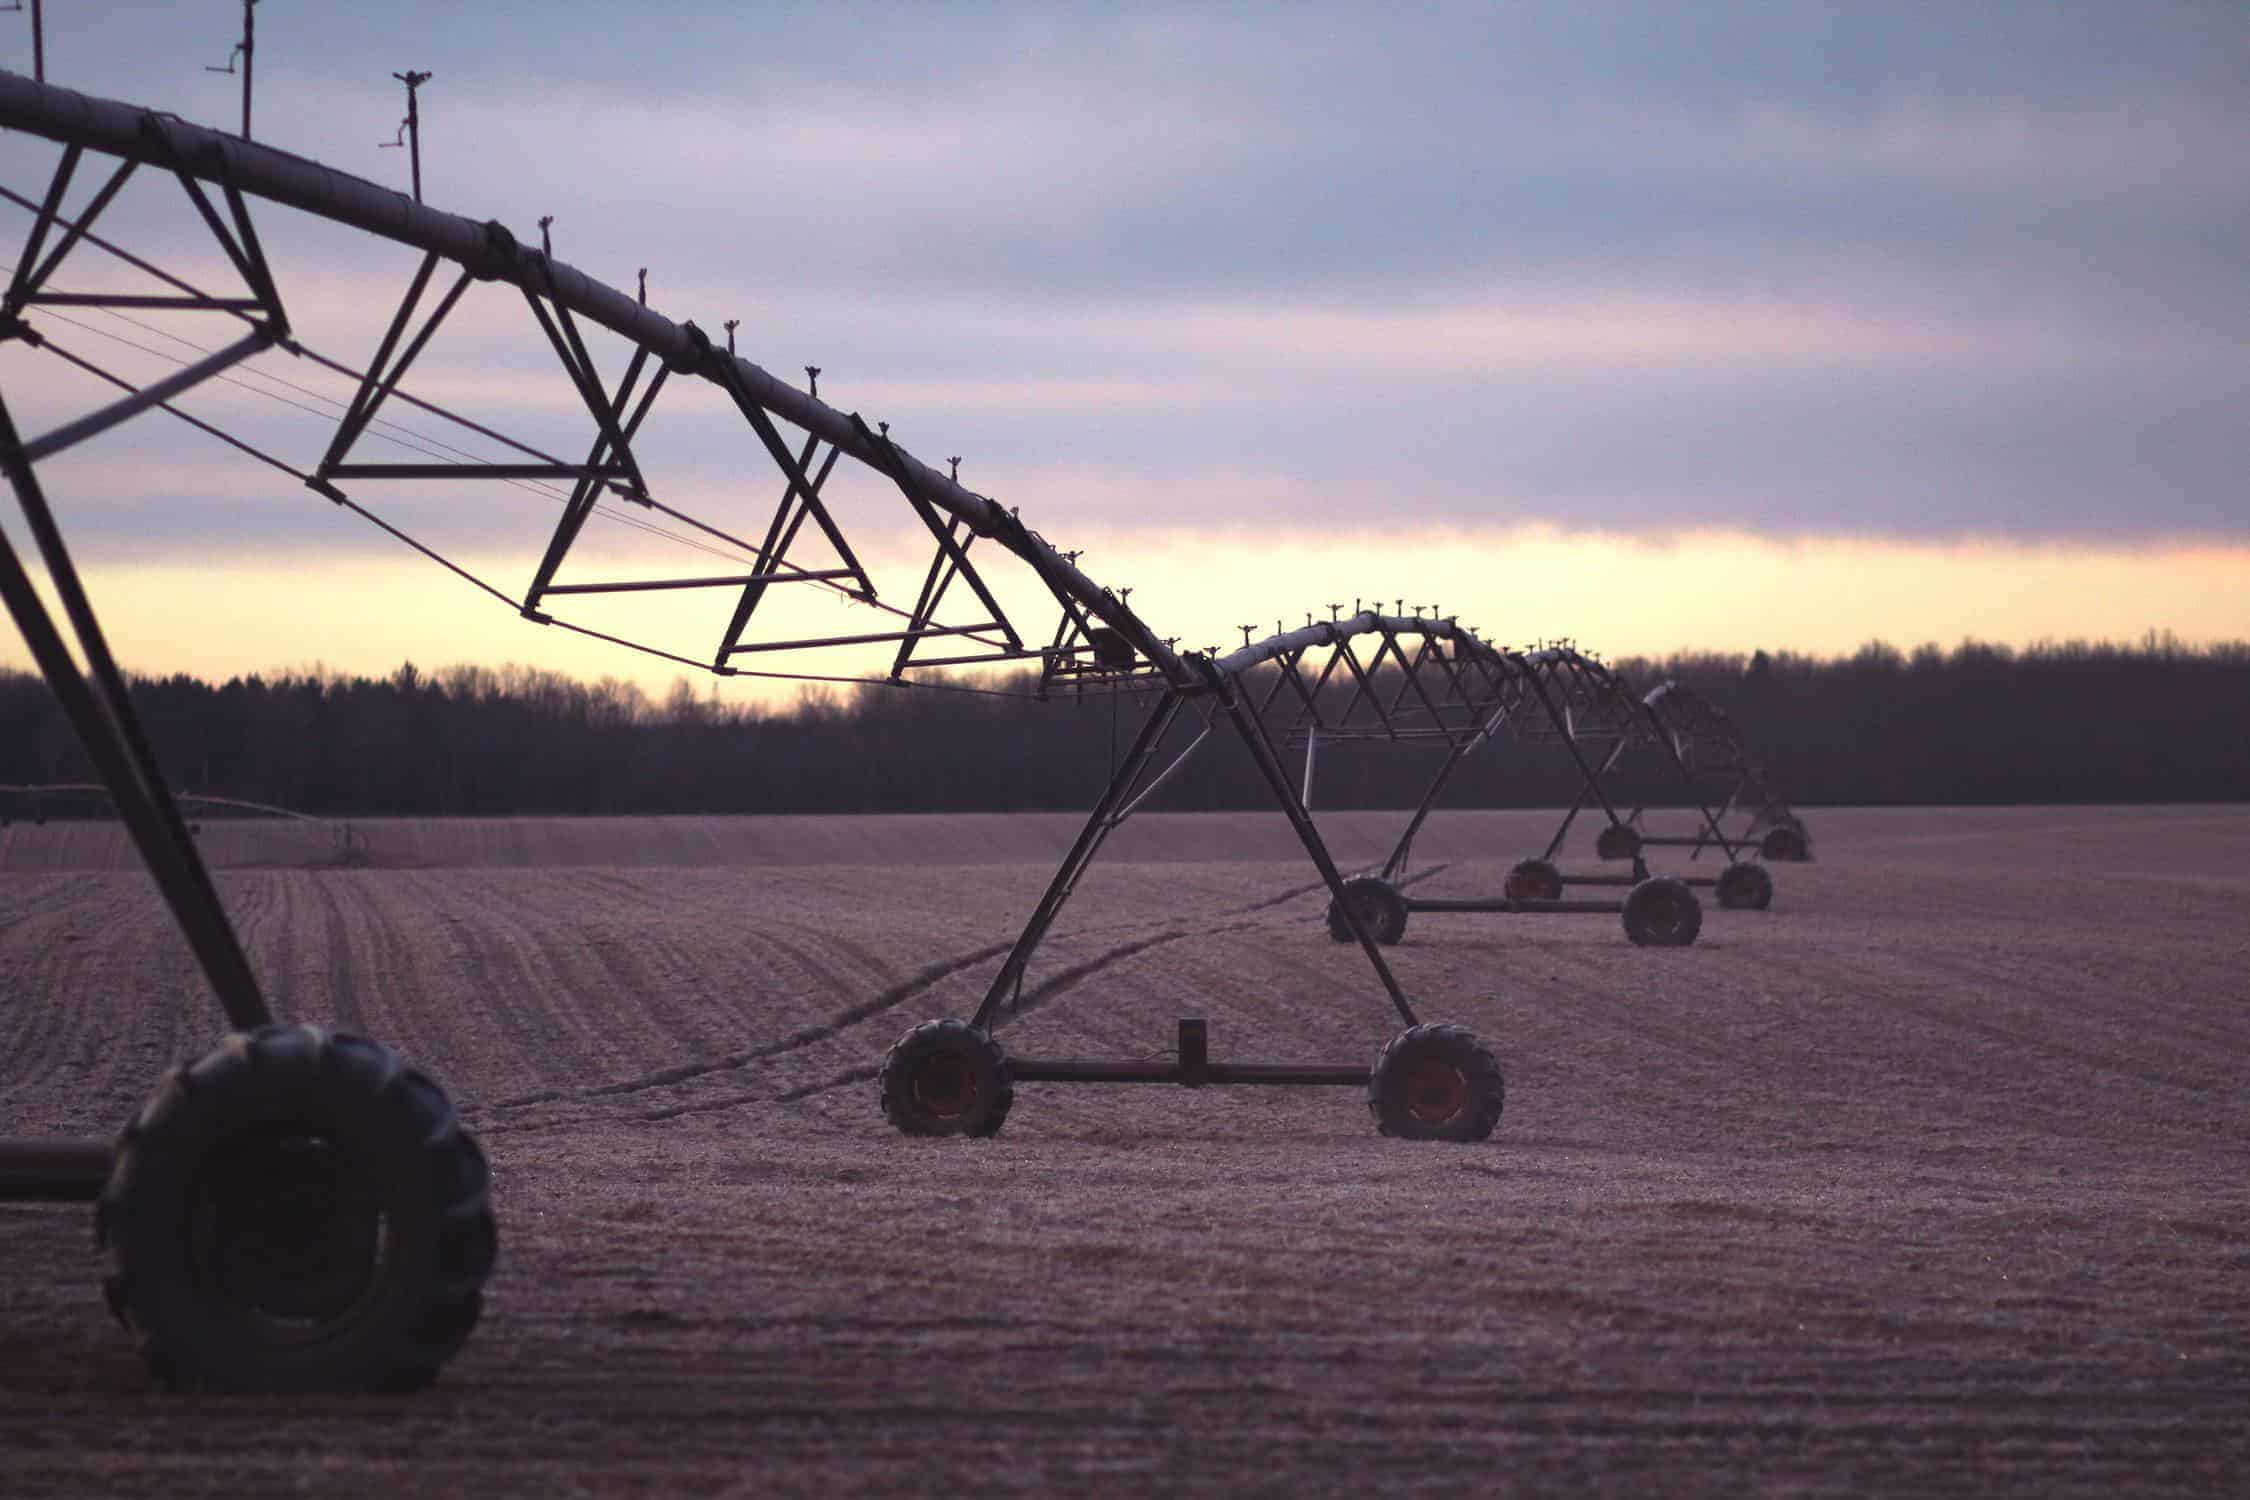 Irrigation system to farm and get rid of bugs